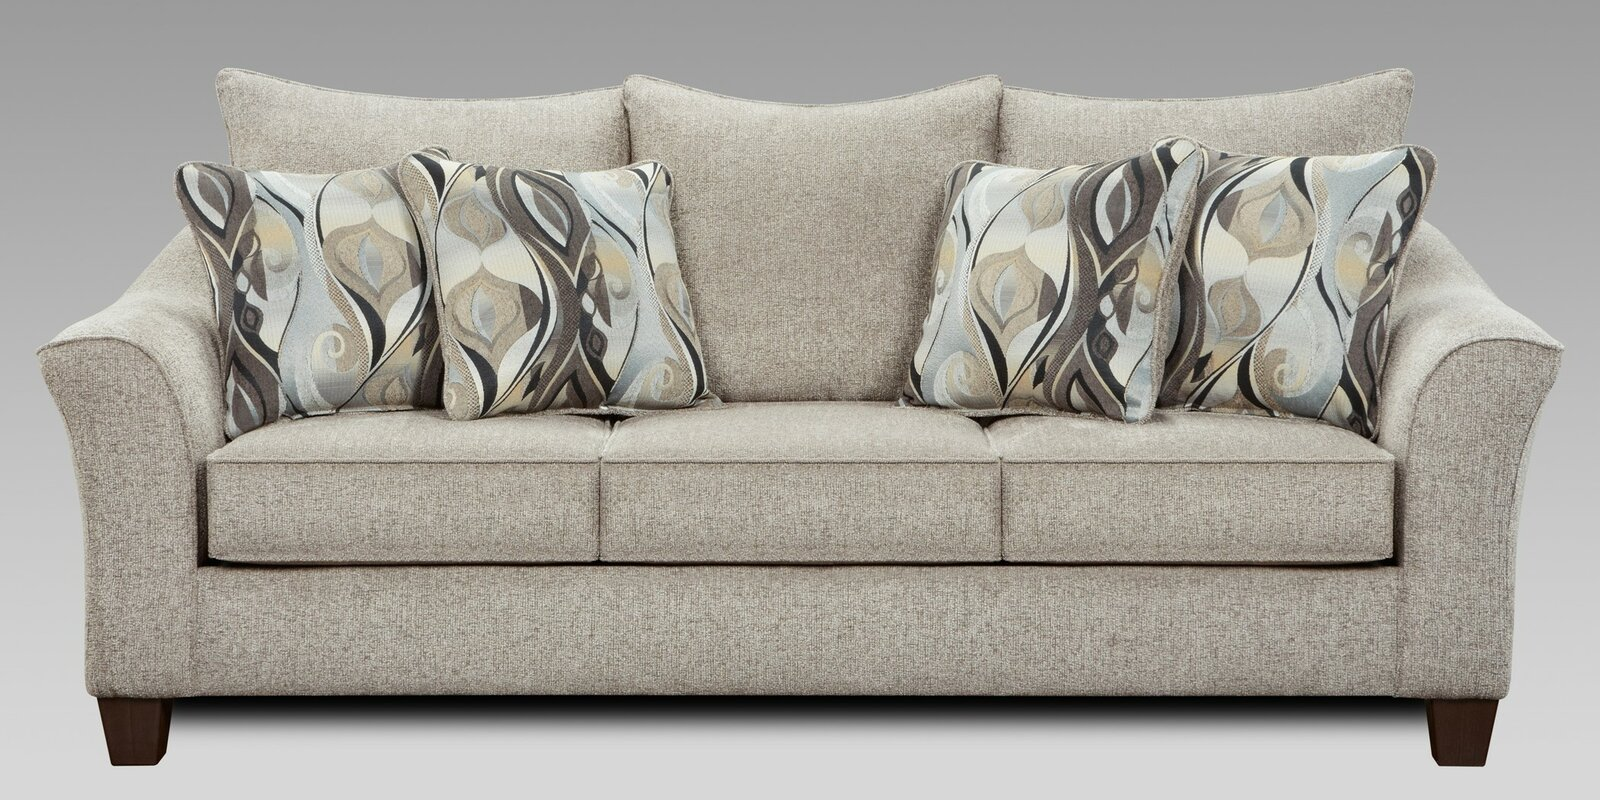 Hartsock Sofa By Alcott Hill Low Prices Sofas